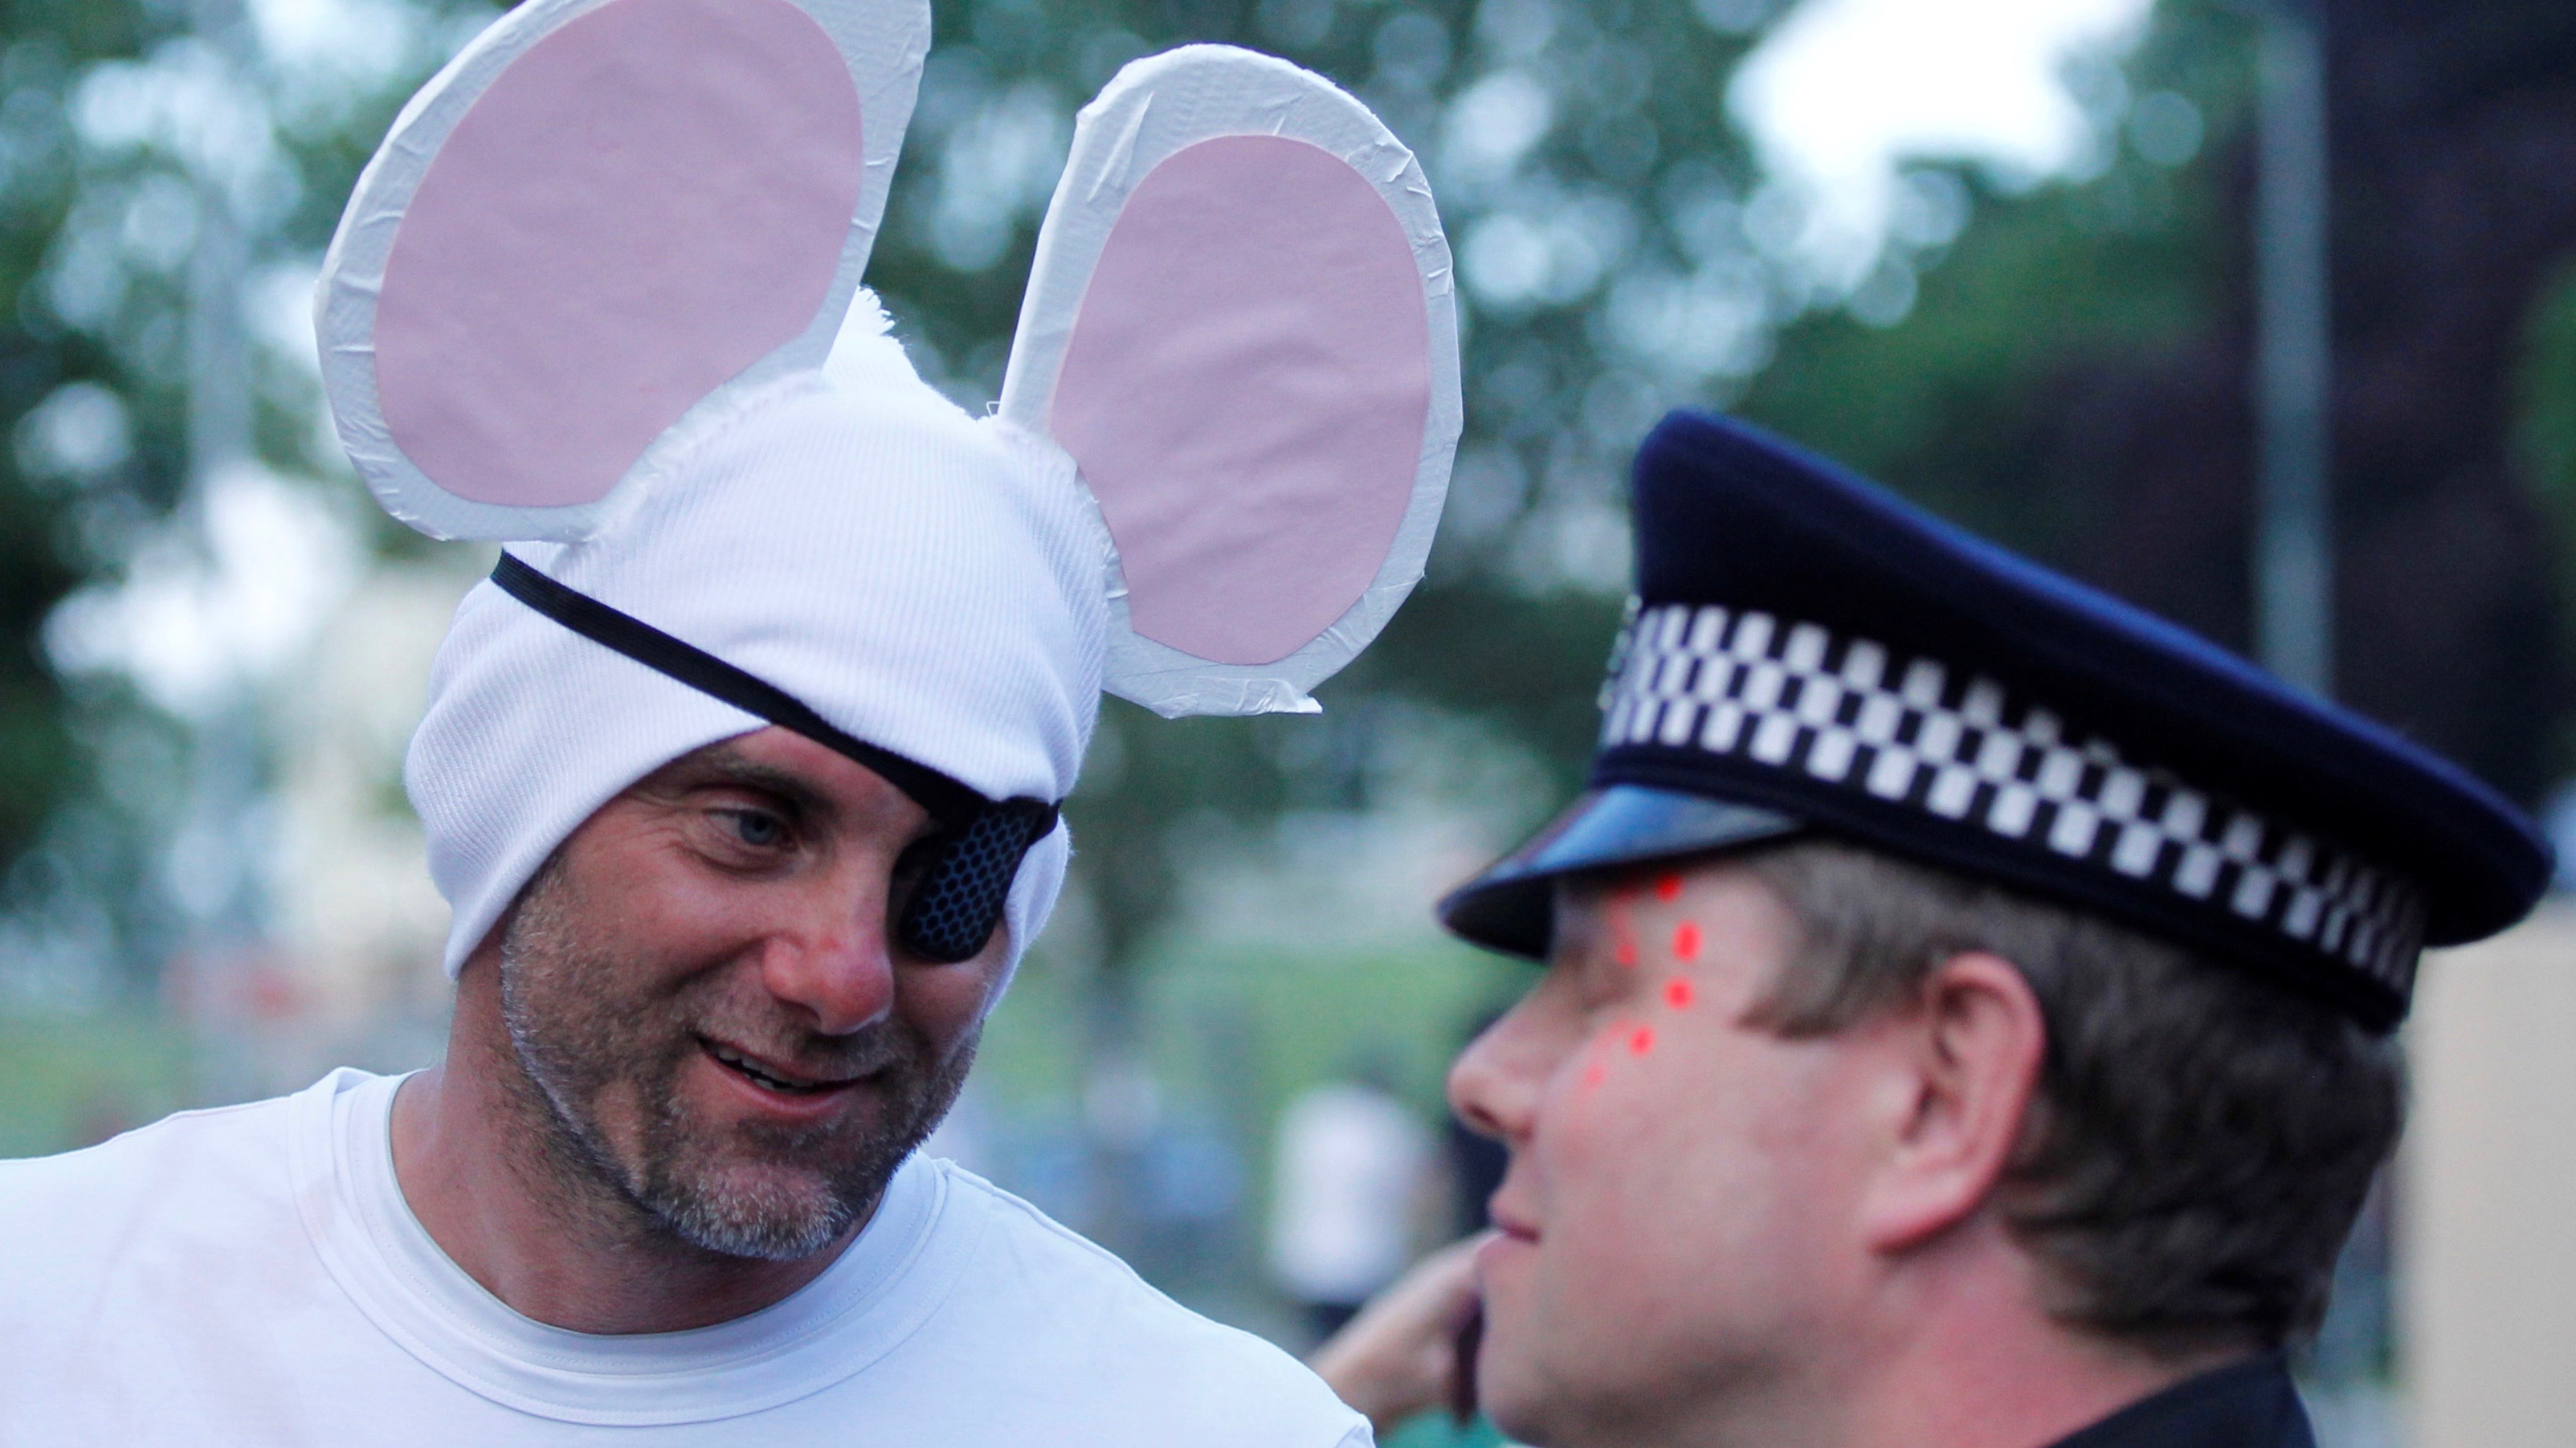 A man dressed as a mouse.